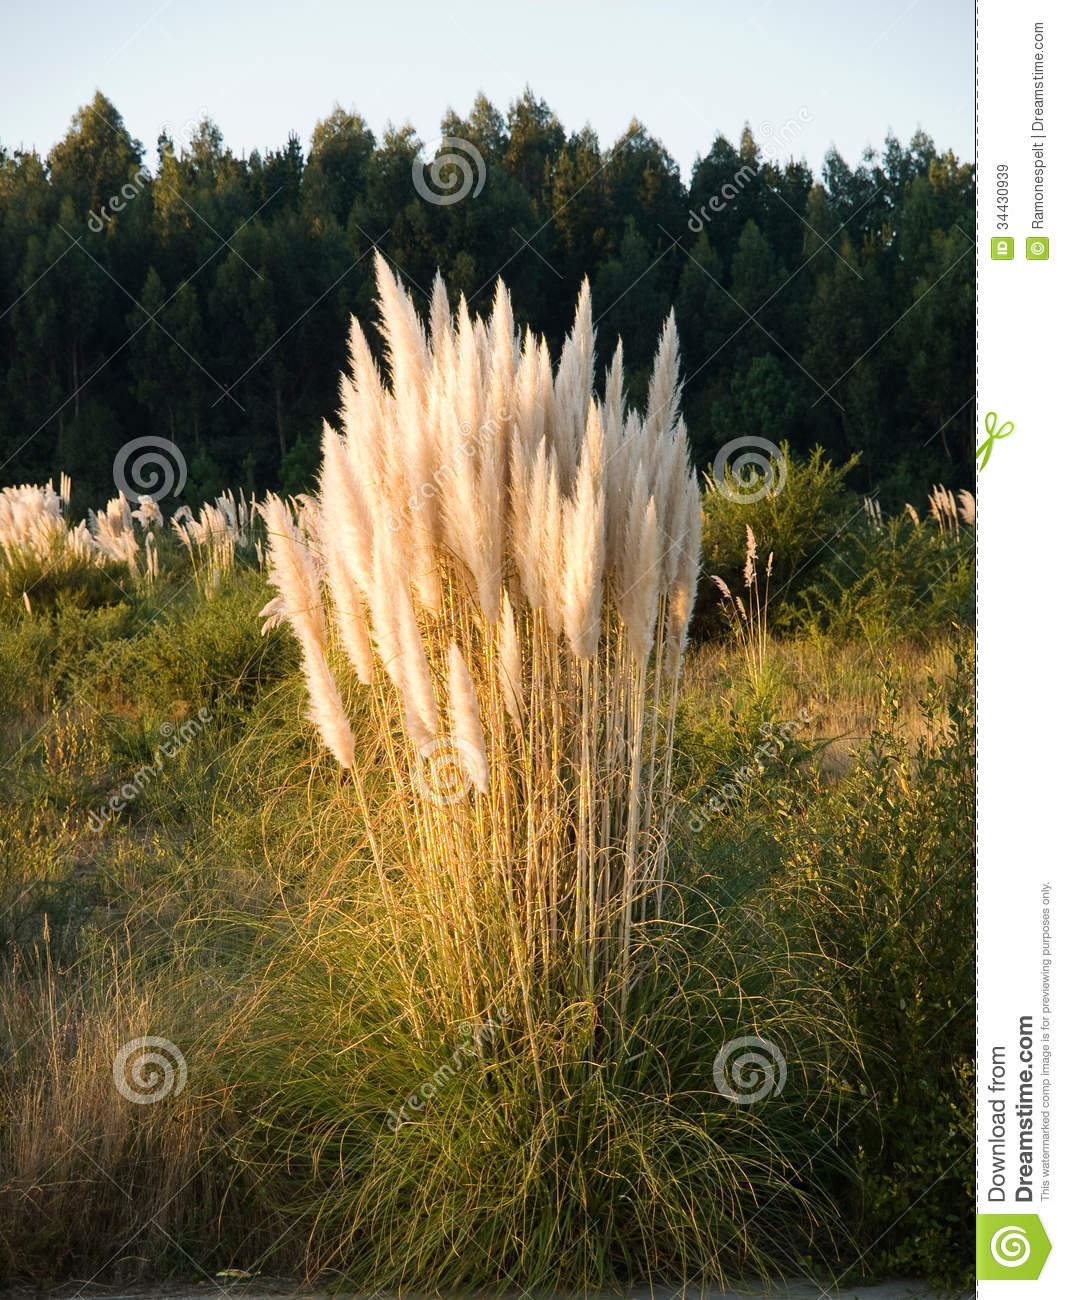 Cortaderia Selloana clipart #4, Download drawings